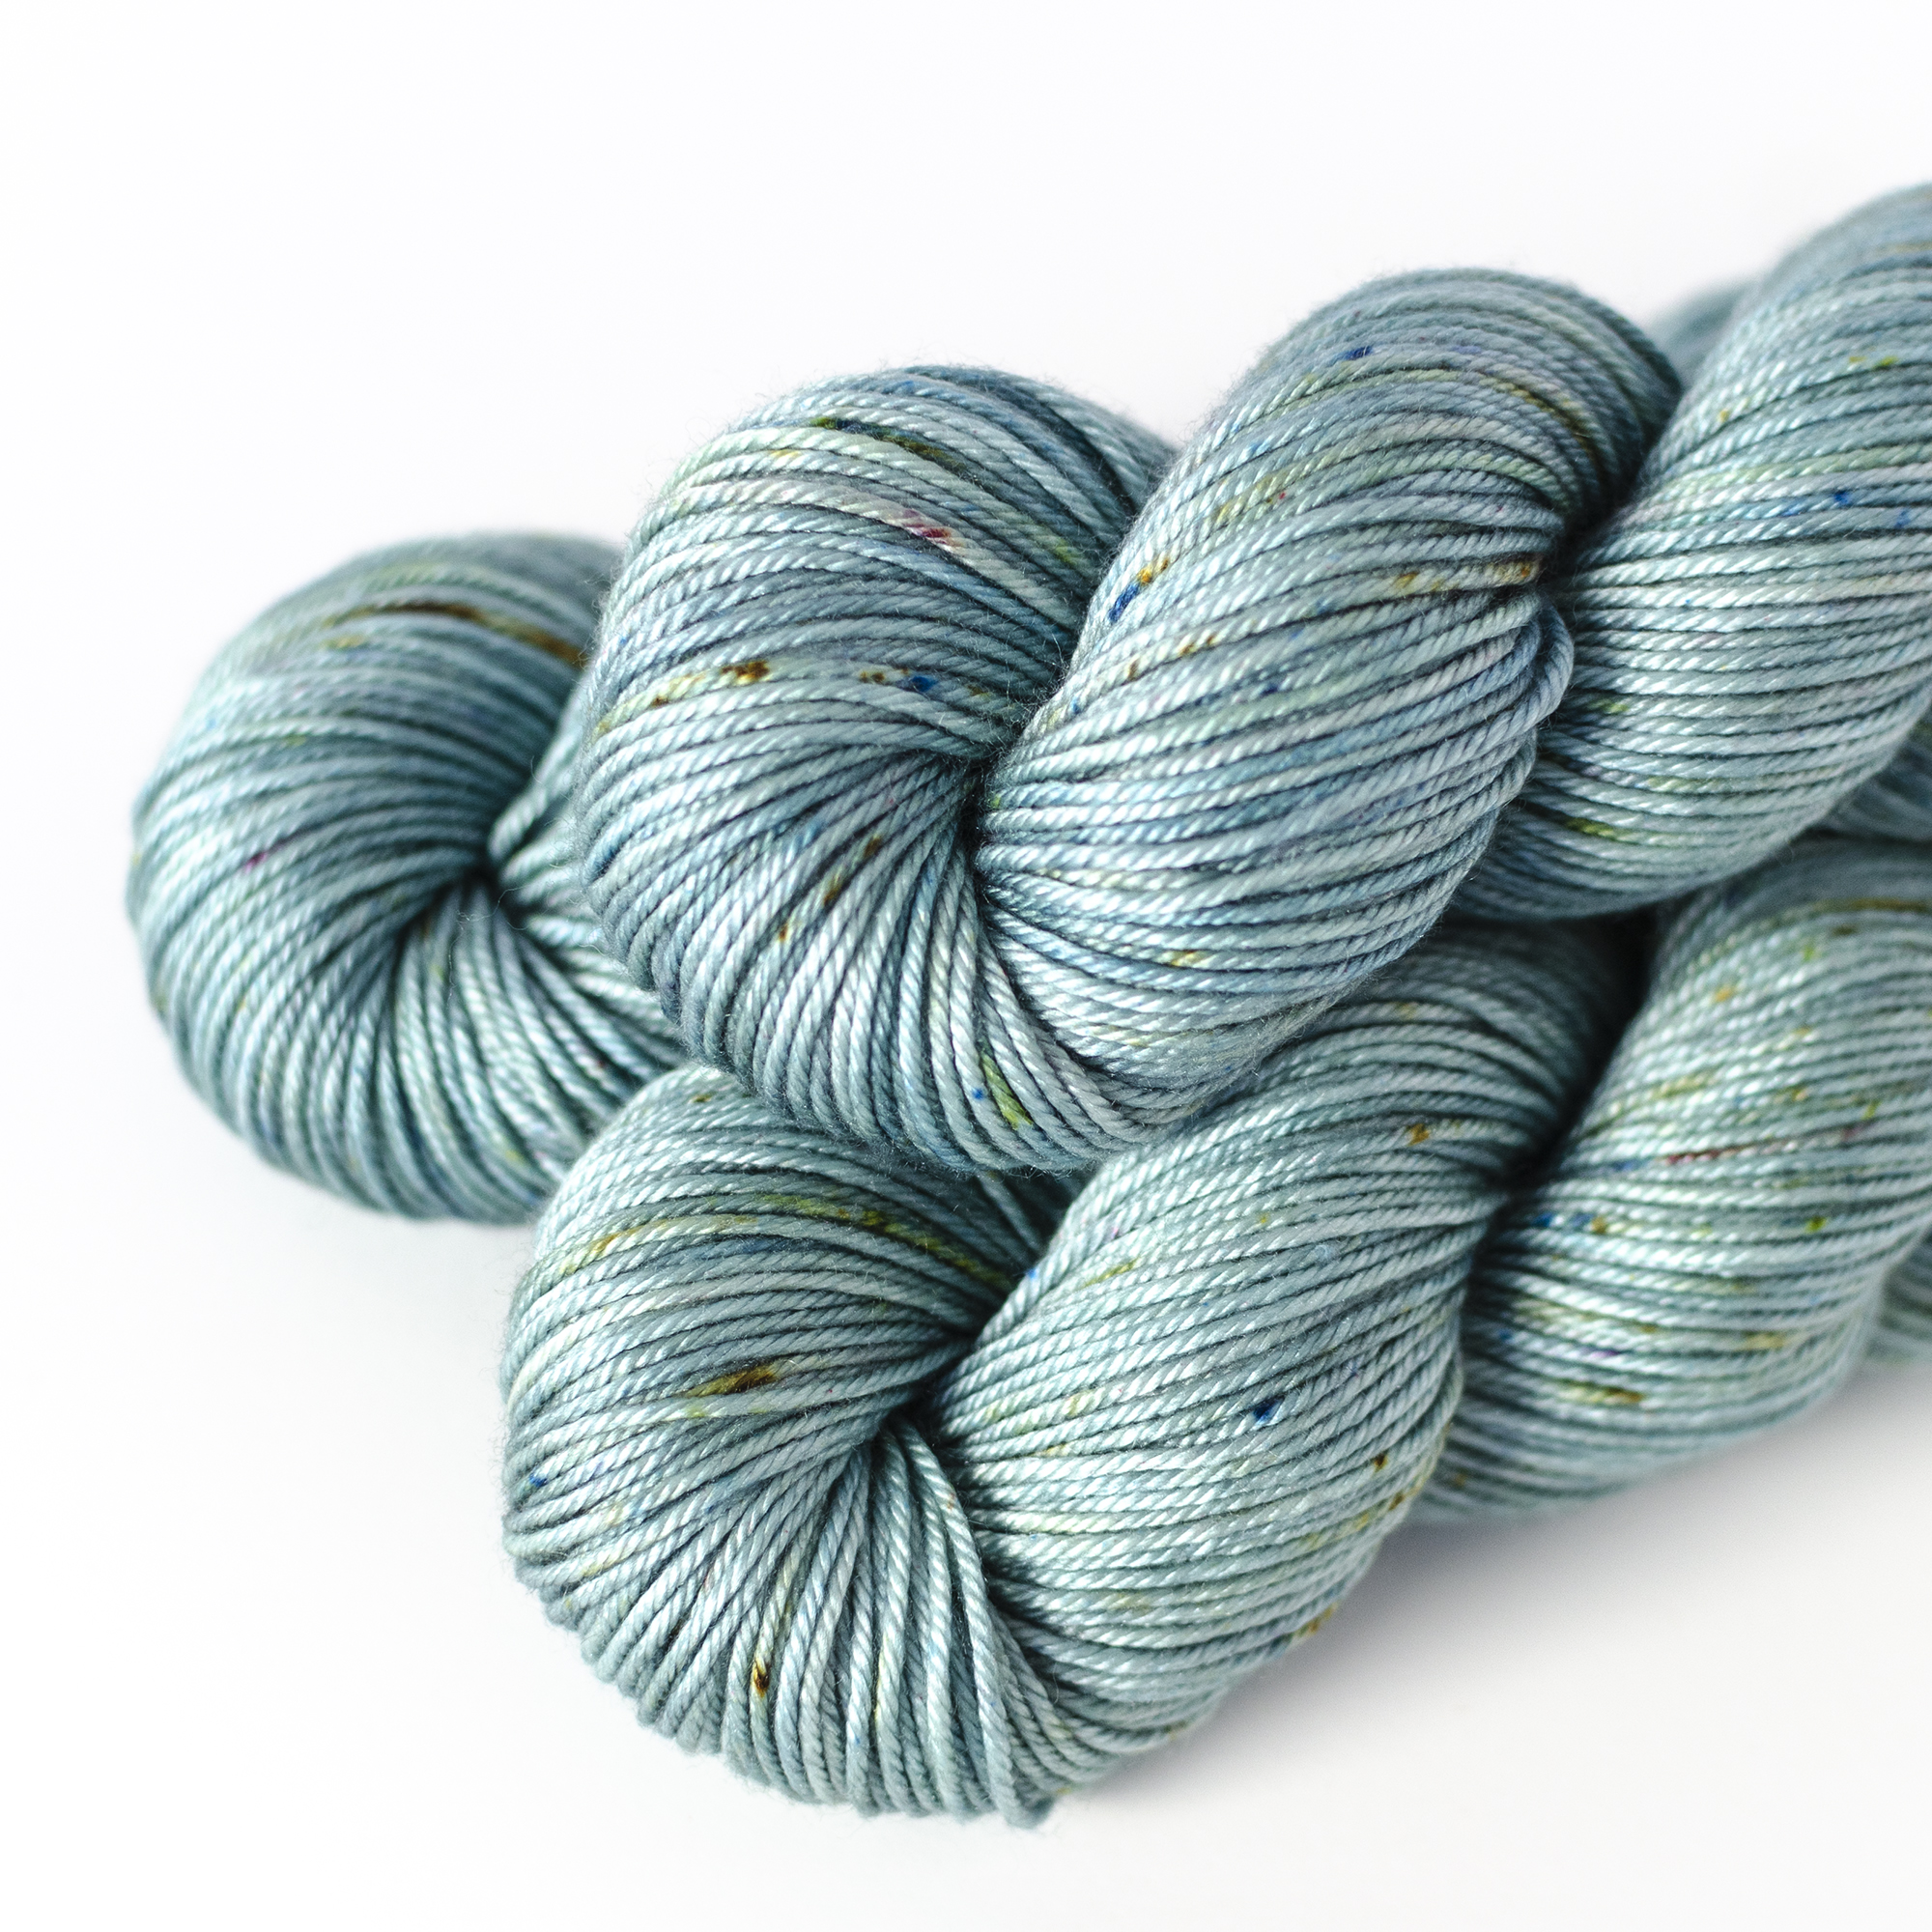 50/50 DK - $32  50% SW Merino Wool, 50% Silk  4 plies  230 yards / 210 meters  100 grams  DK Weight  US 5-7 / 3.75-4.5mm  Hand wash / Dry flat  This DK weight yarn is soft and smooth with excellent drape.